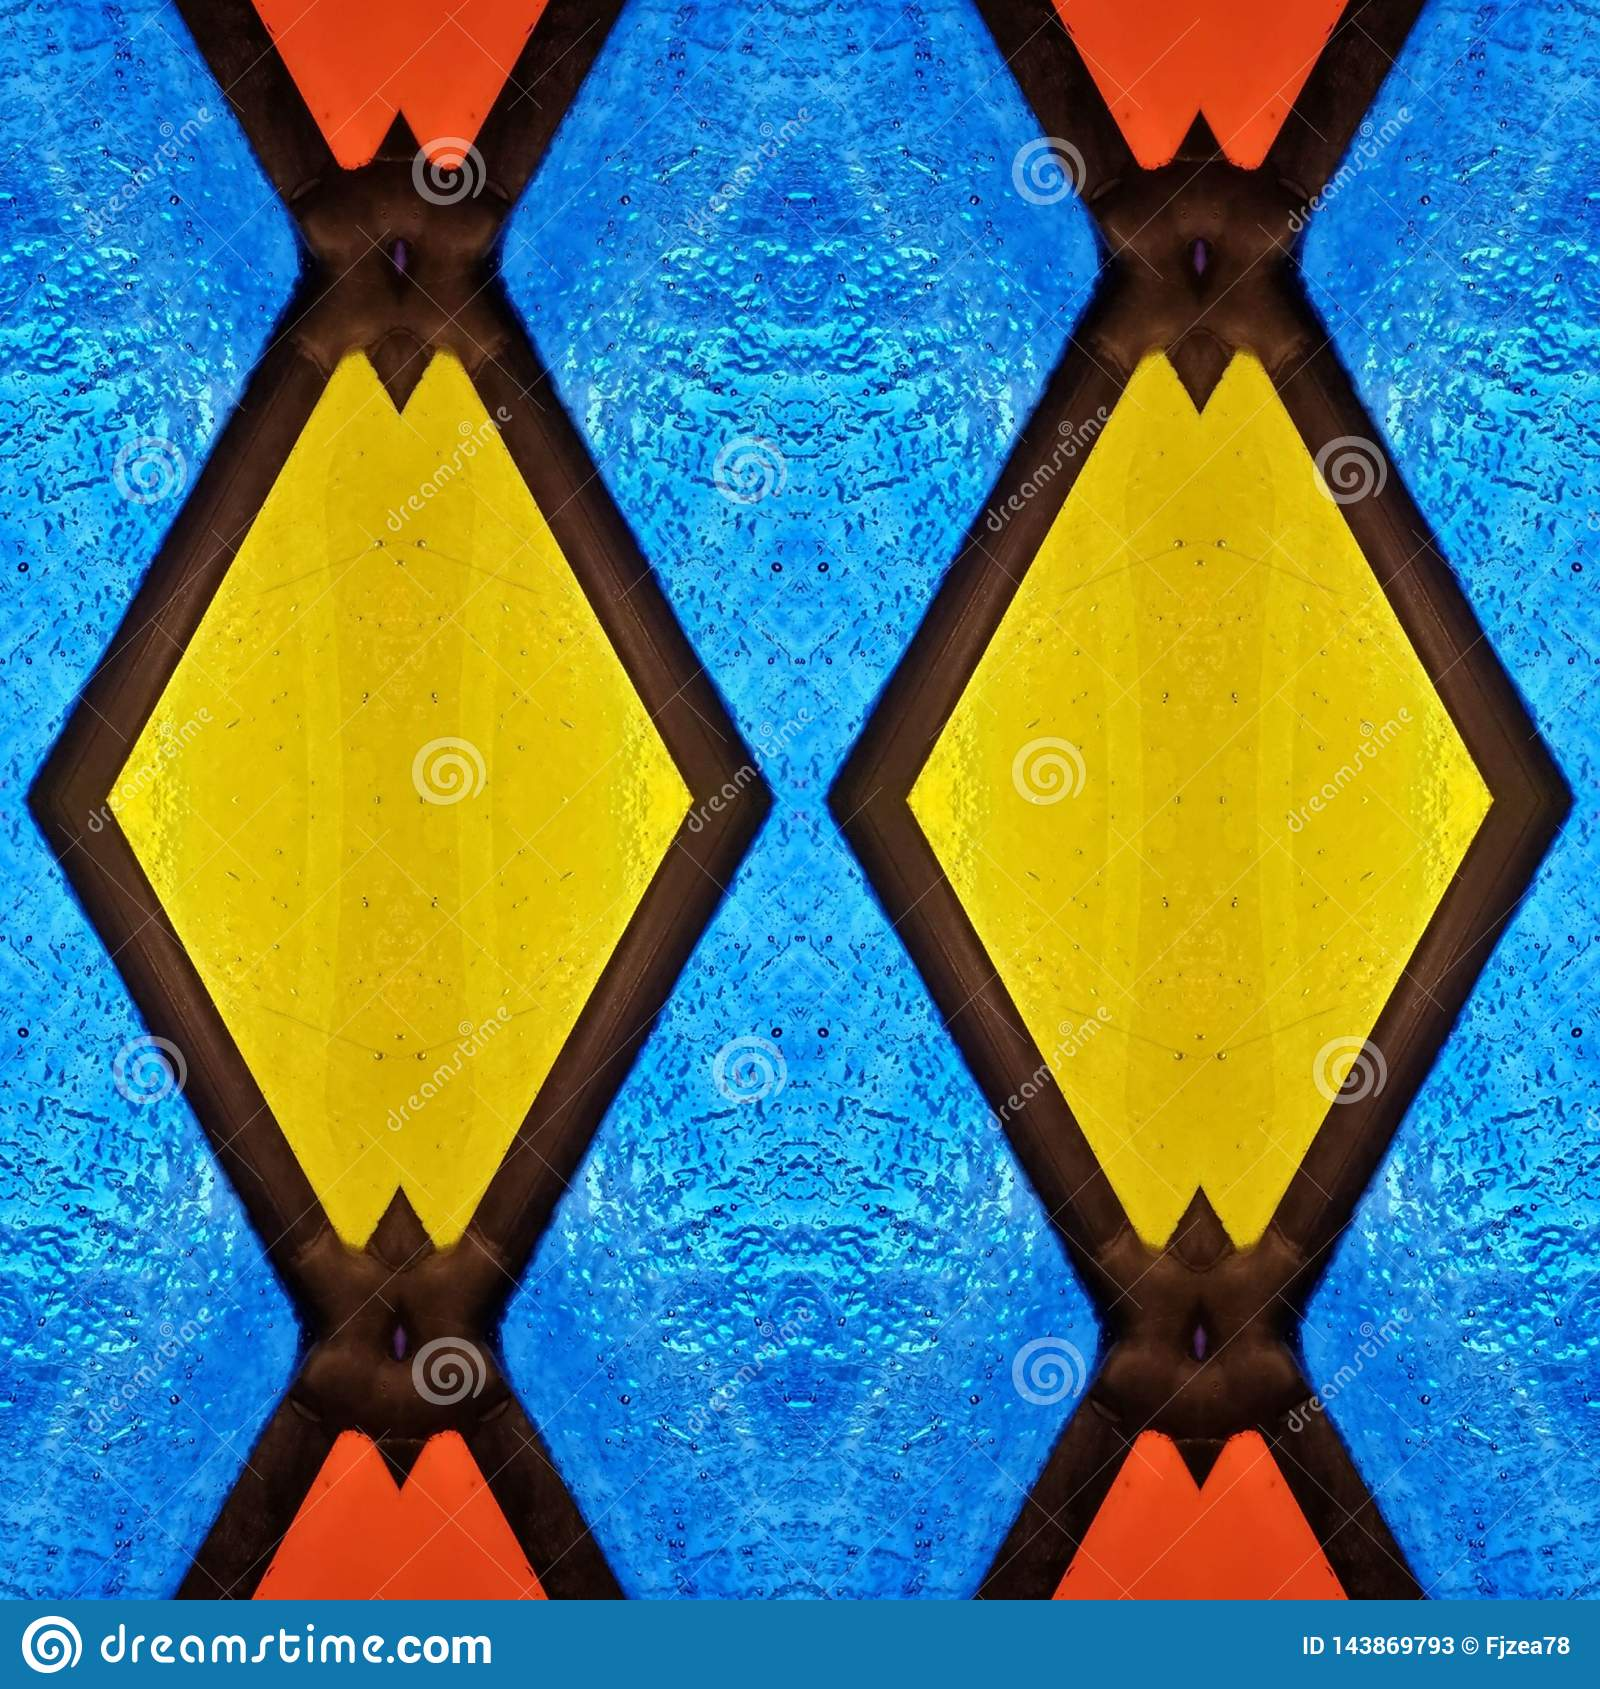 abstract design with stained glass in red, blue and yellow colors, material for decoration of windows, background and texture